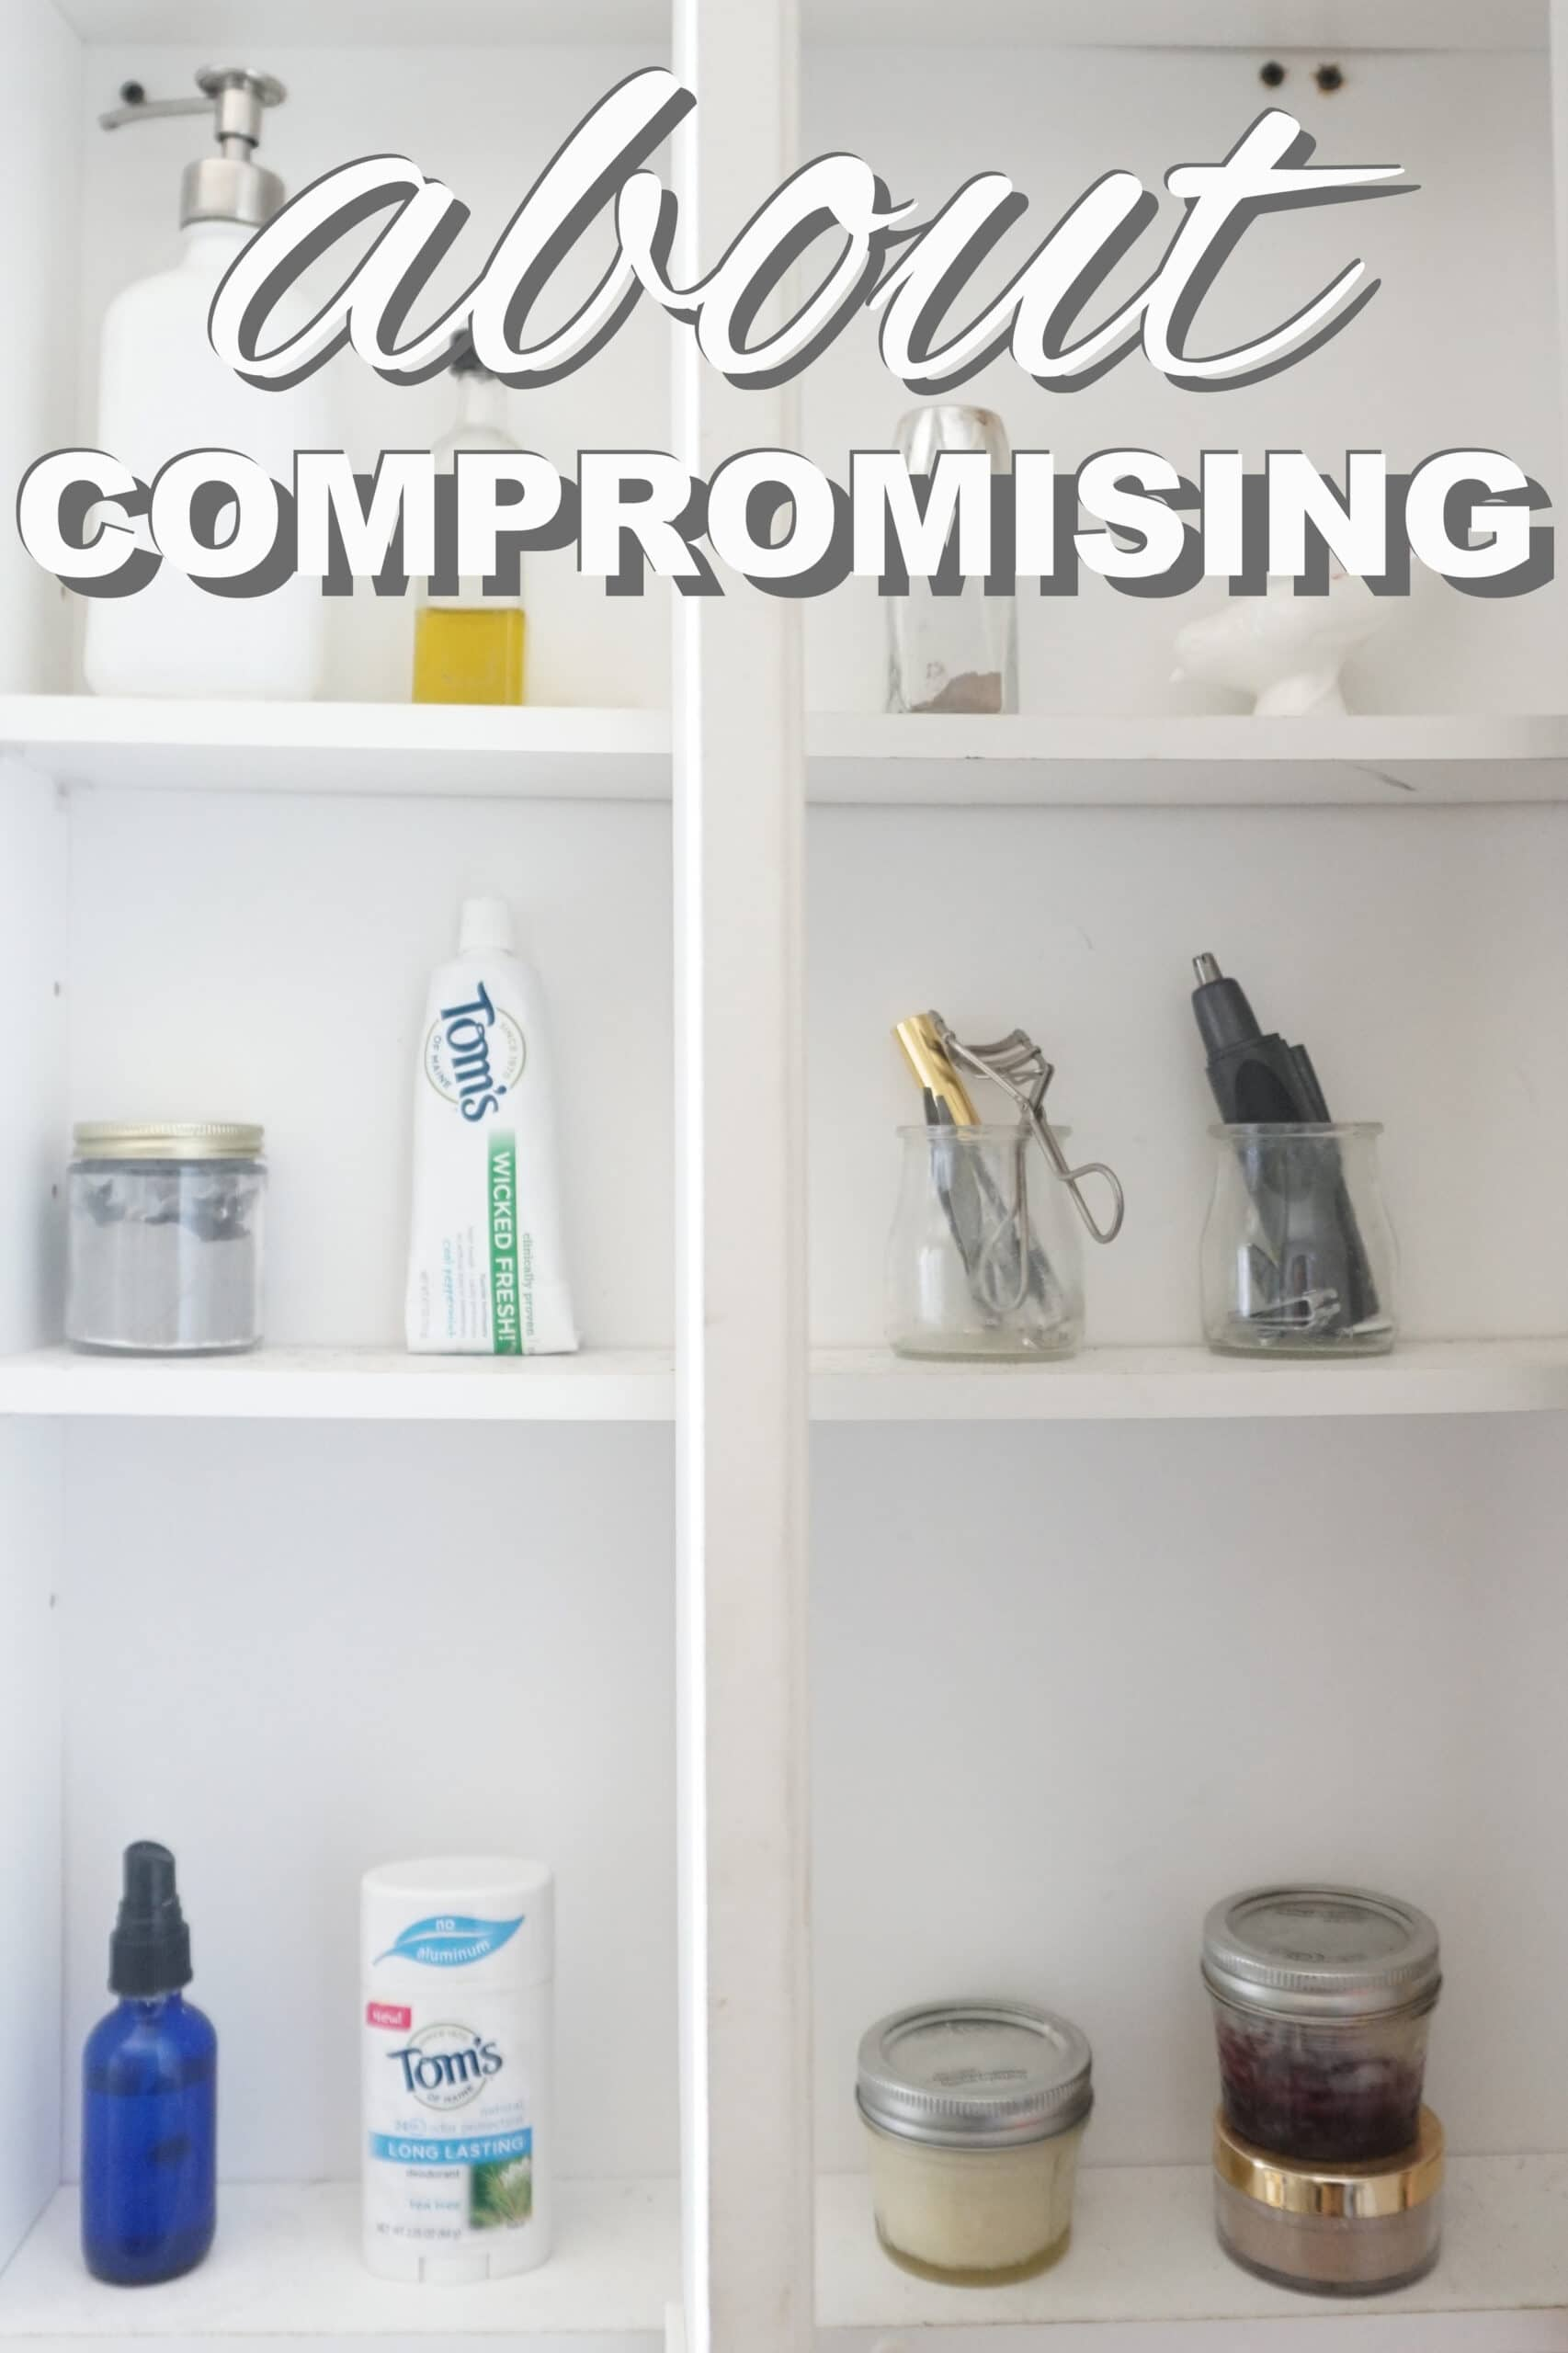 about compromising